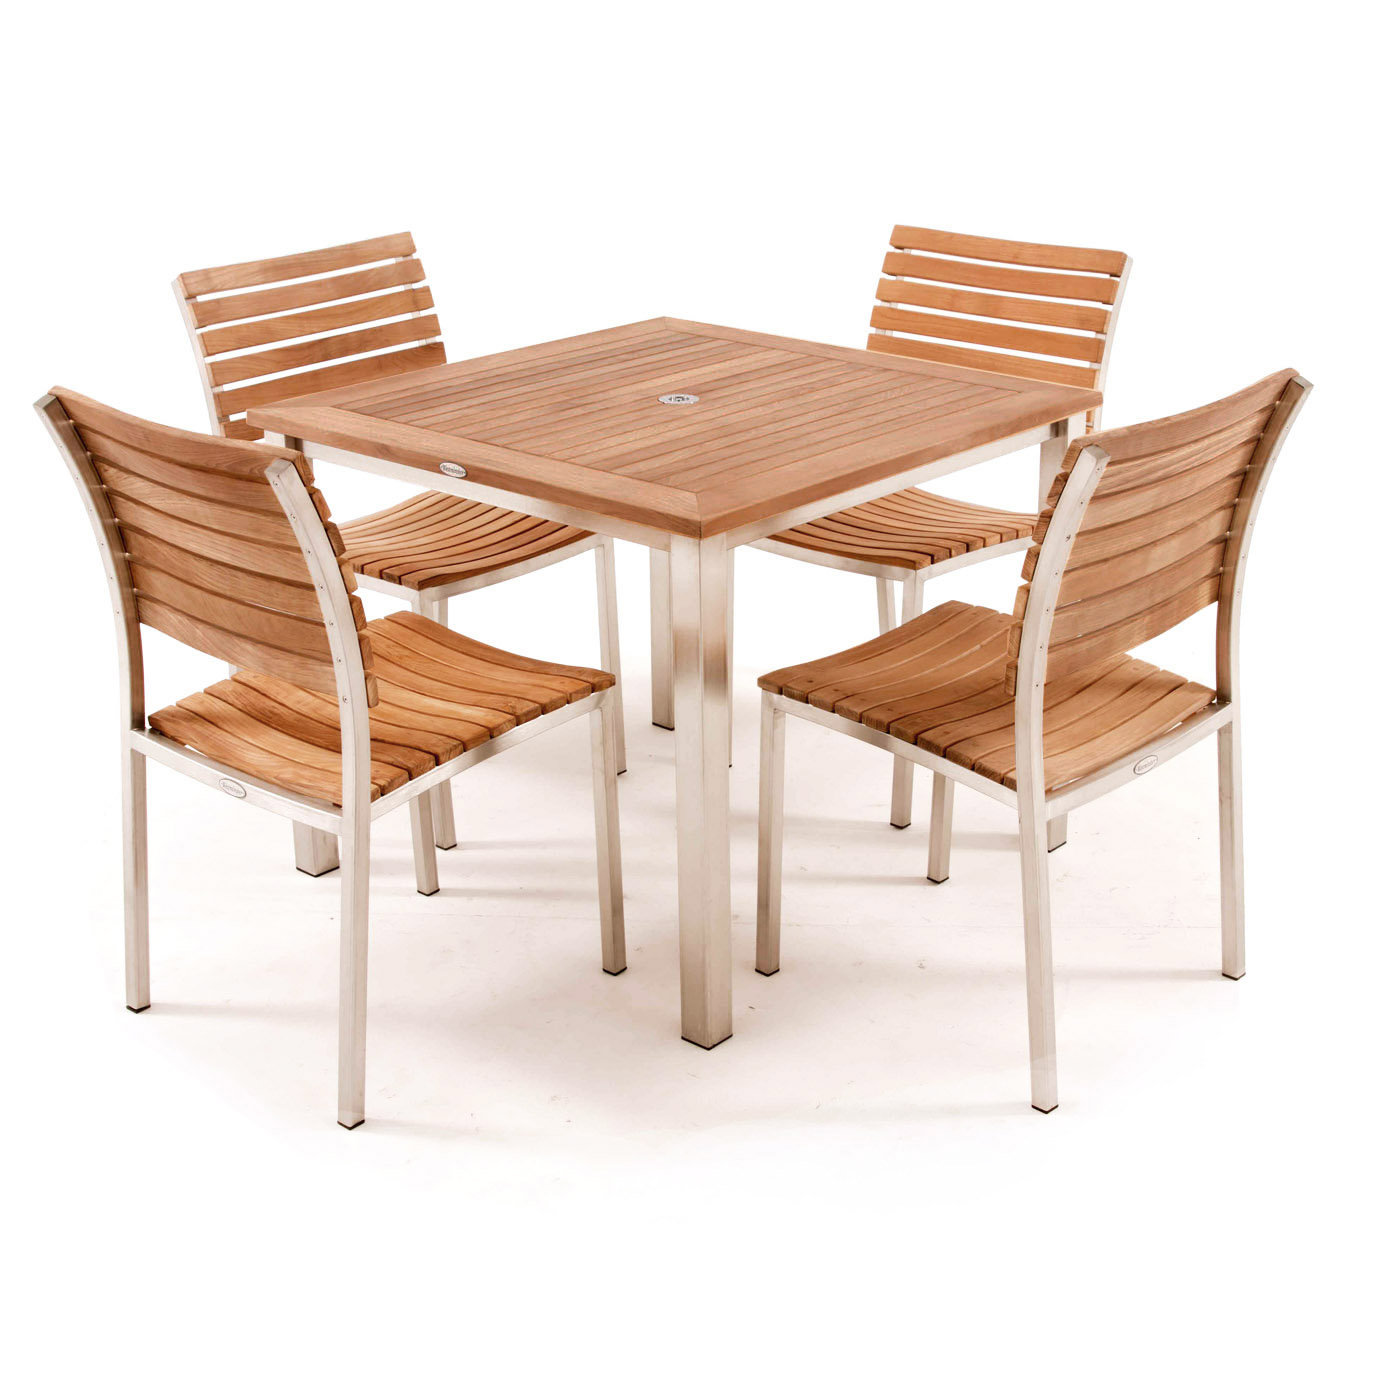 And Stainless Steel Dining Set Westminster Teak Outdoor Furniture Awesome  Teak And Steel Outdoor Furniture   Photo